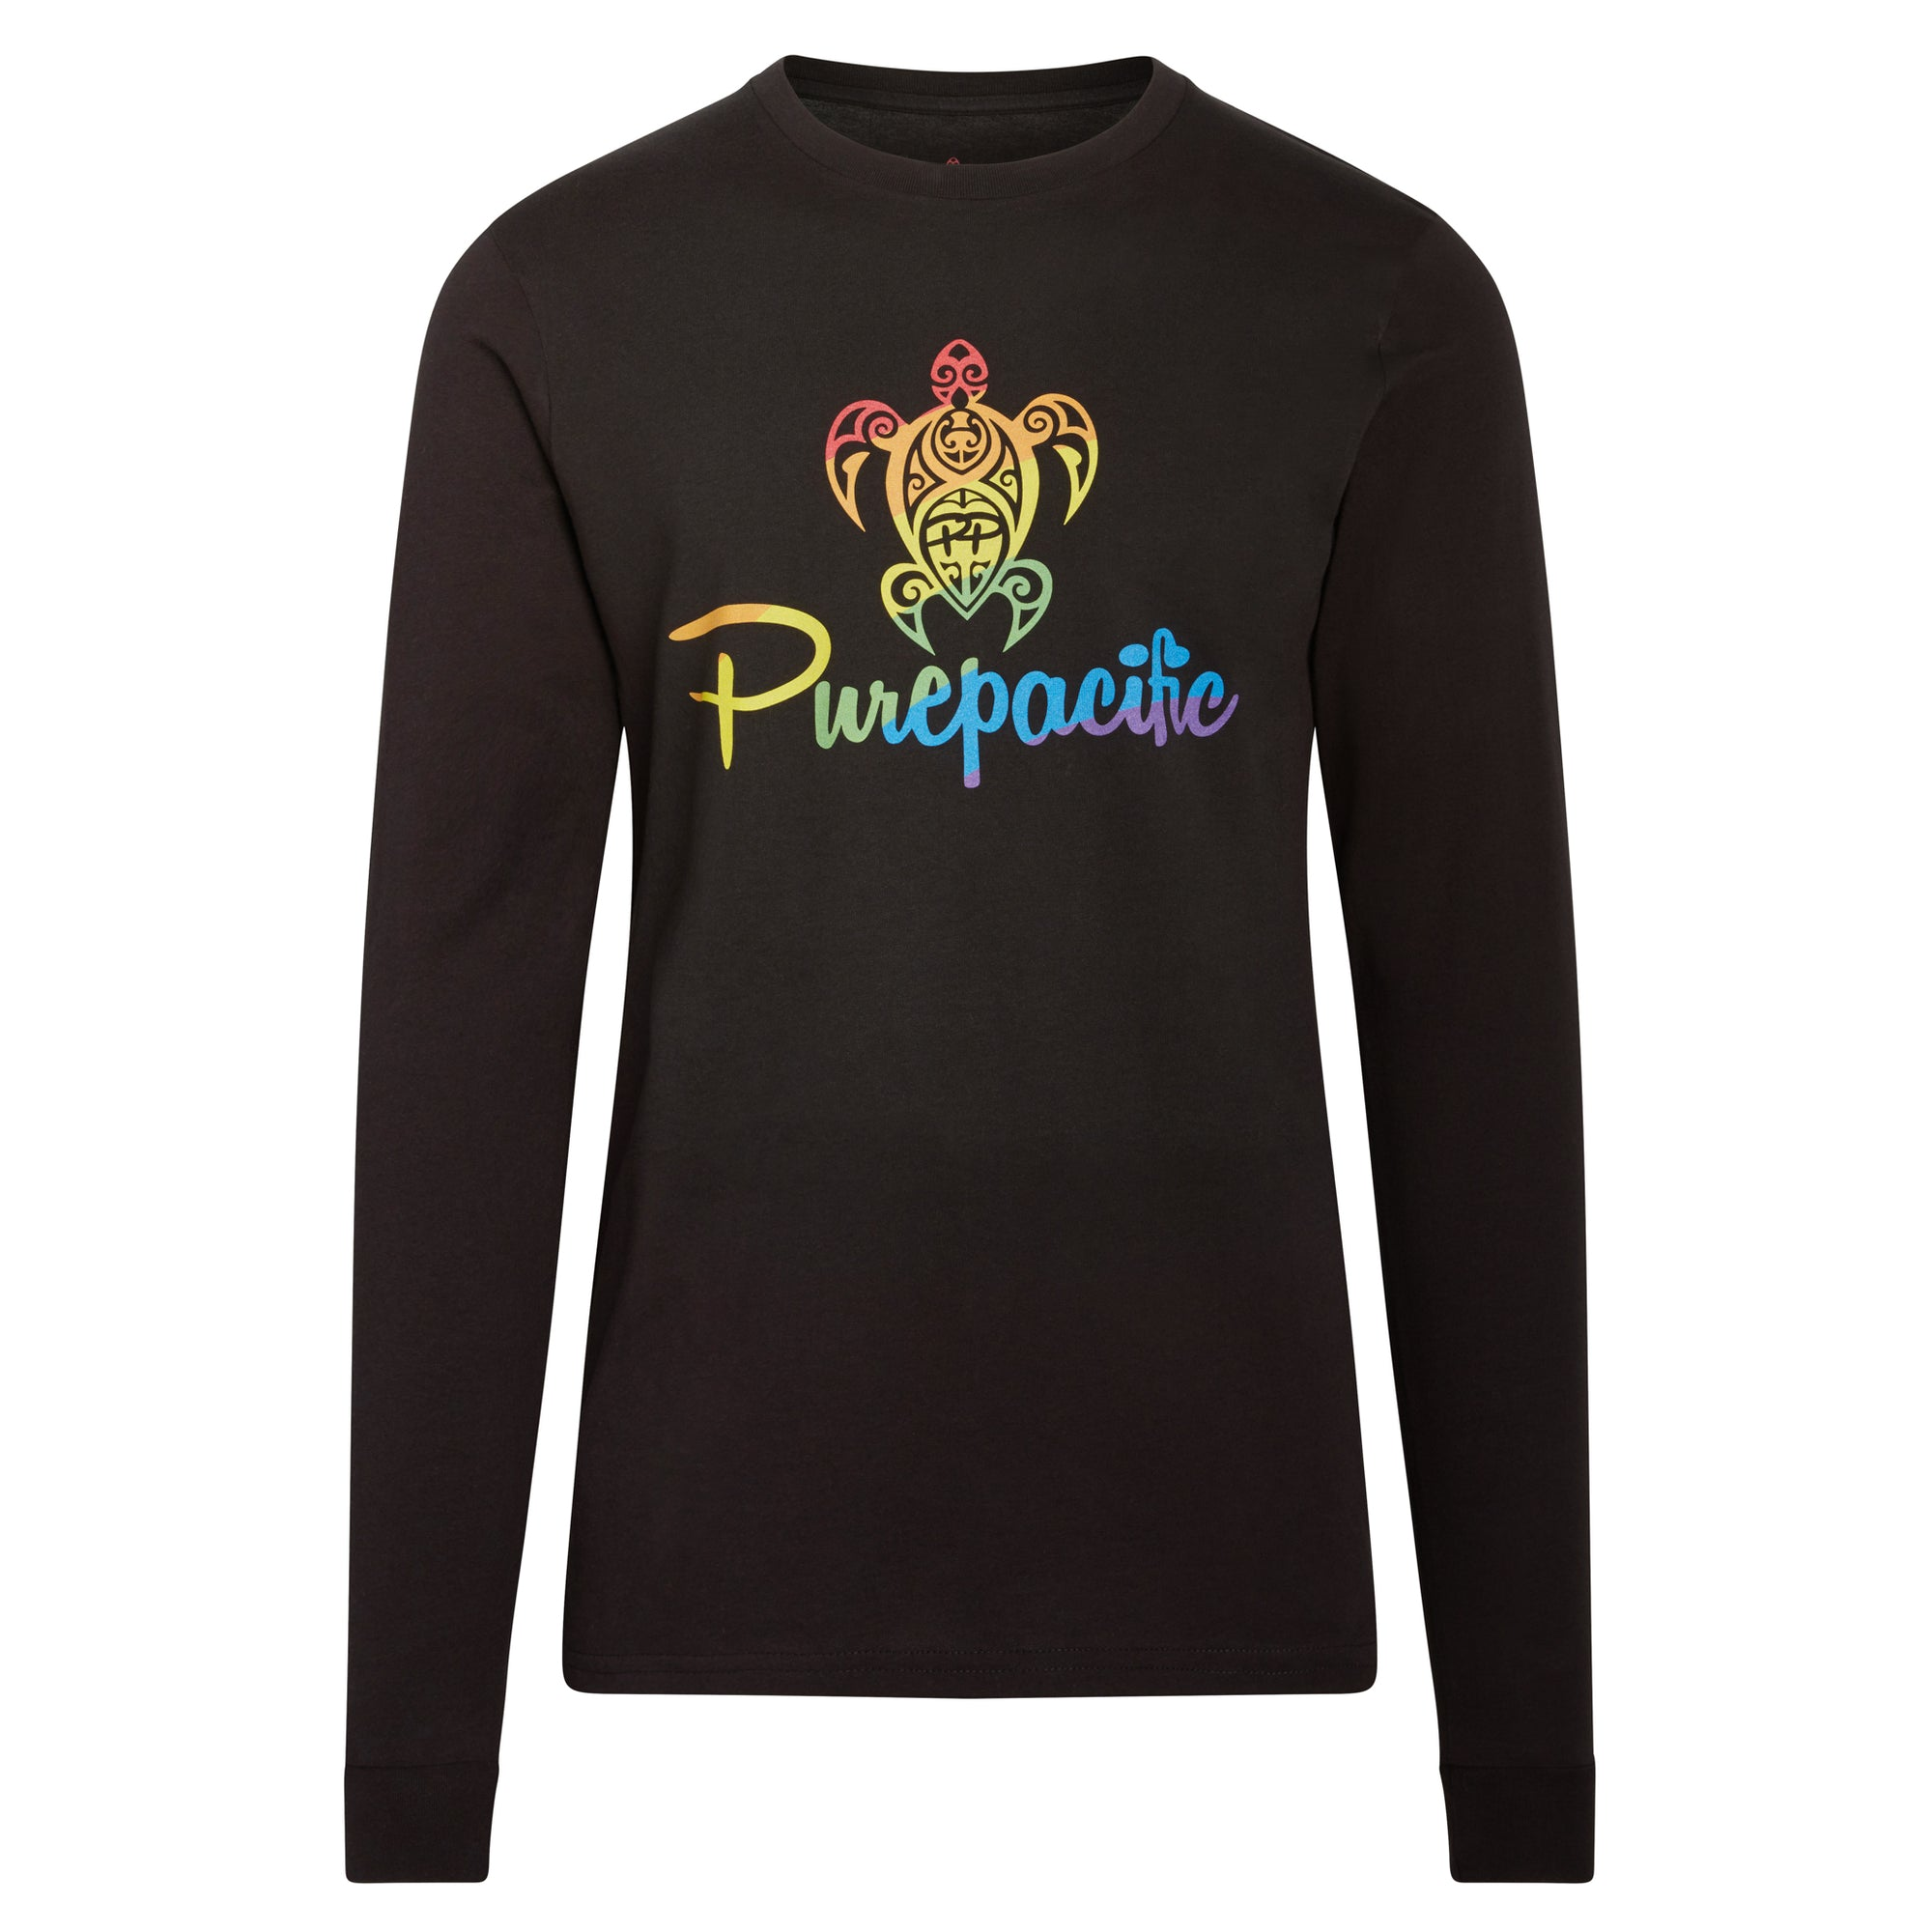 Unisex Long Sleeve Tee Pre-Order and get Free shipping on any order